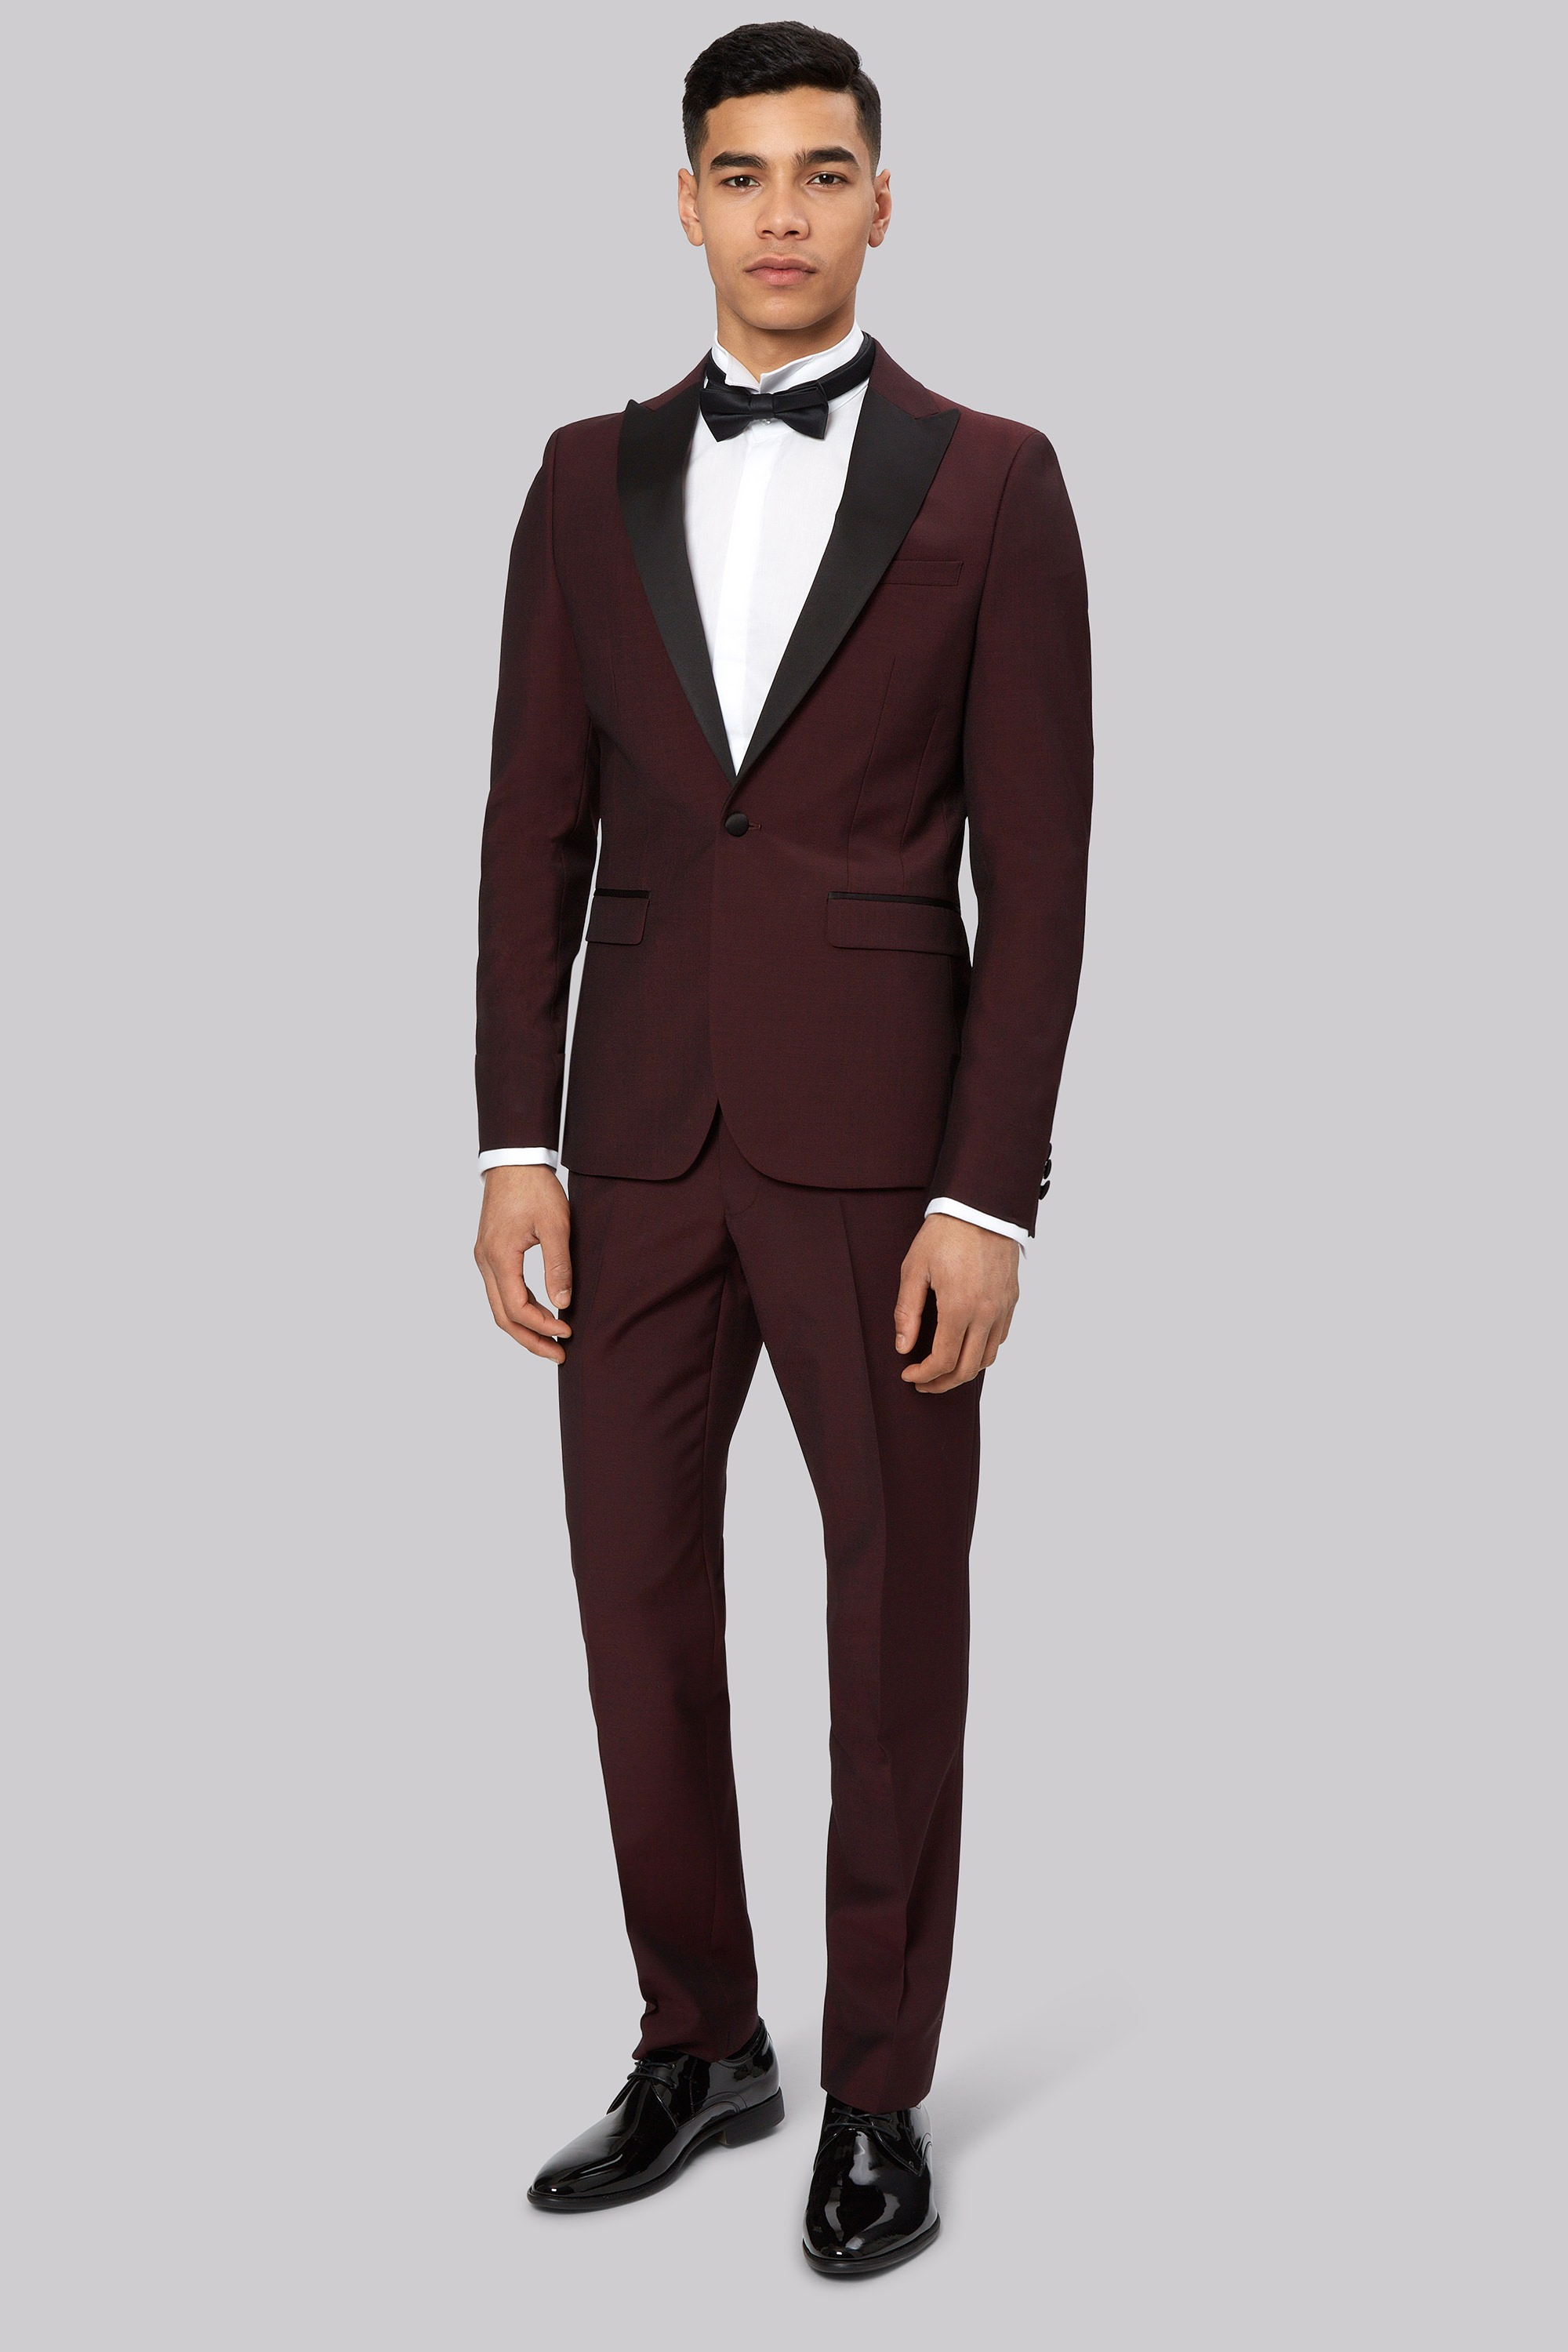 Discover the latest range of prom suits at ASOS. Shop for the latest range of suits, tuxedos, pants, jackets, ties and shoes. Available today at ASOS. your browser is not supported. ASOS DESIGN skinny suit in black and white grid check.